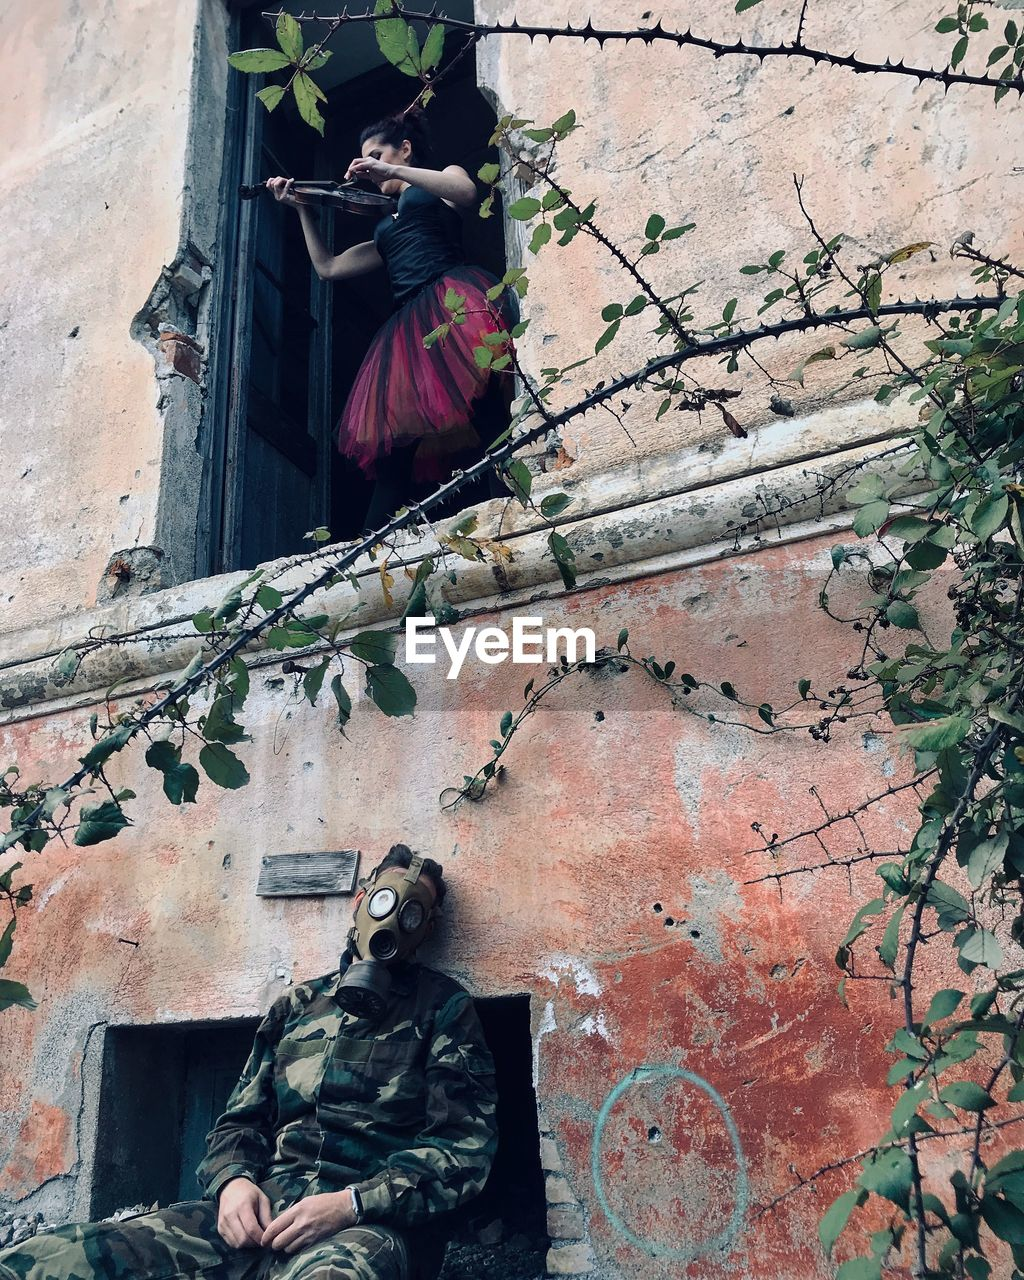 Soldier sitting while woman playing violin at abandoned building